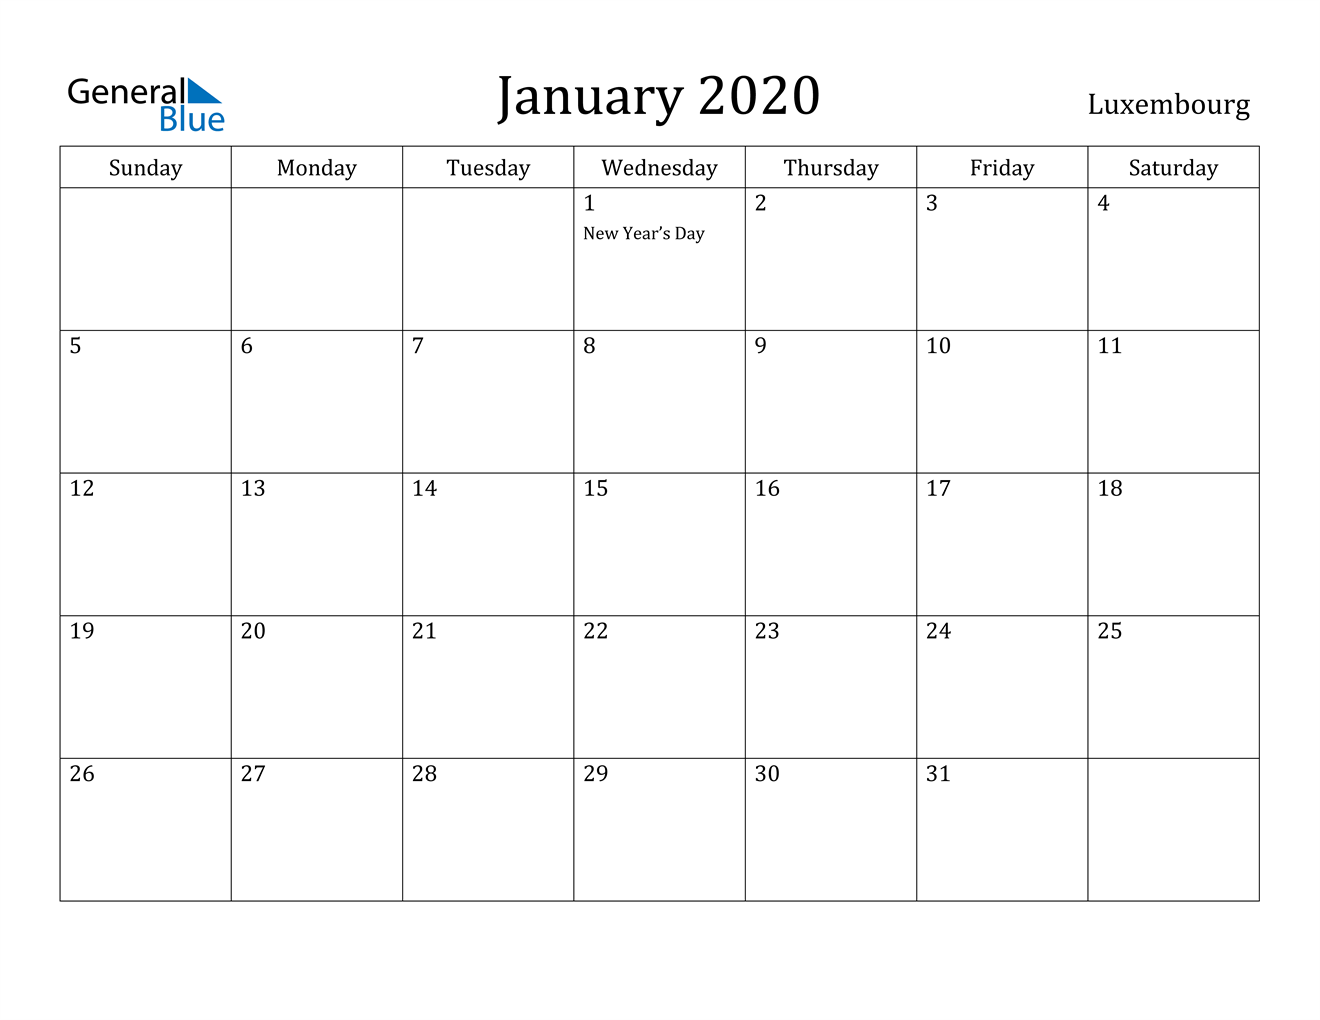 Image of January 2020 Luxembourg Calendar with Holidays Calendar